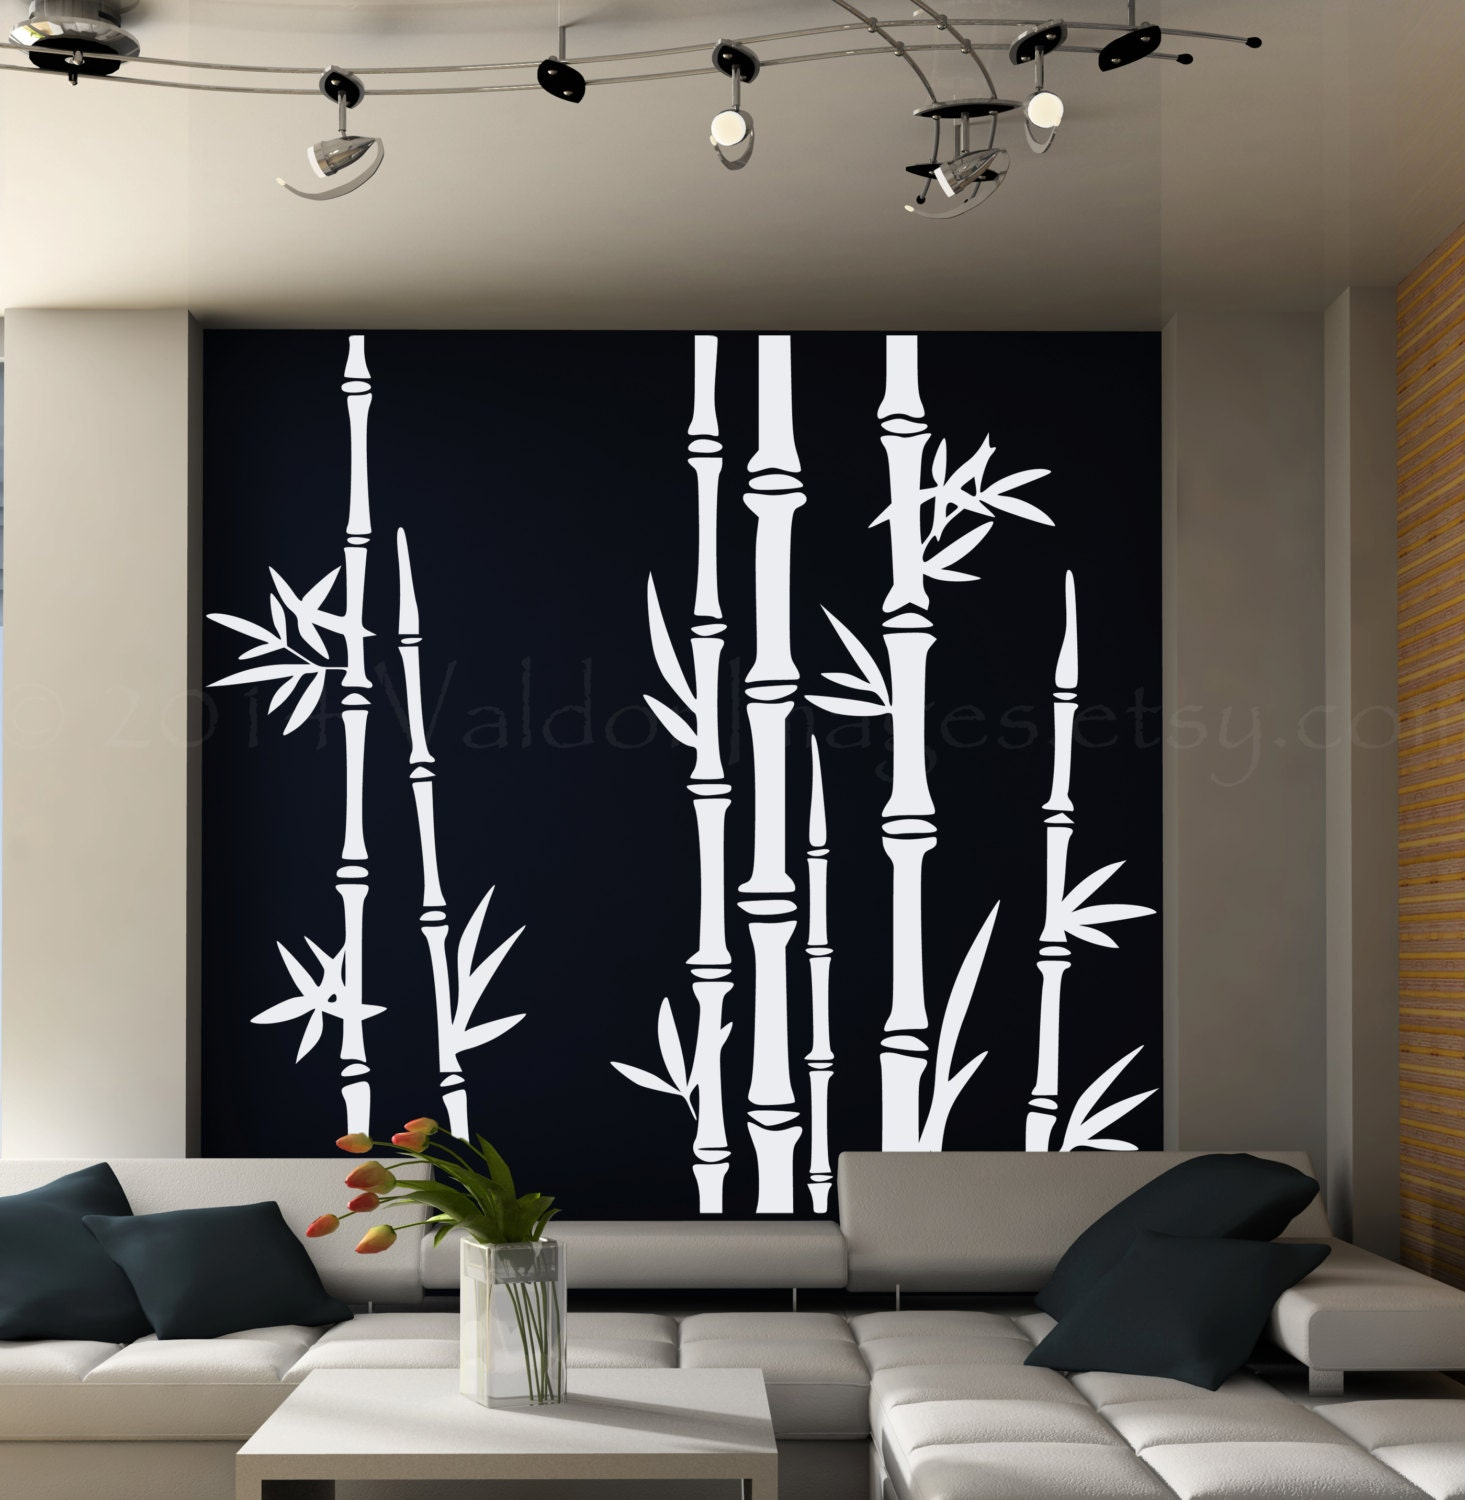 Bedroom wall art trees -  Zoom